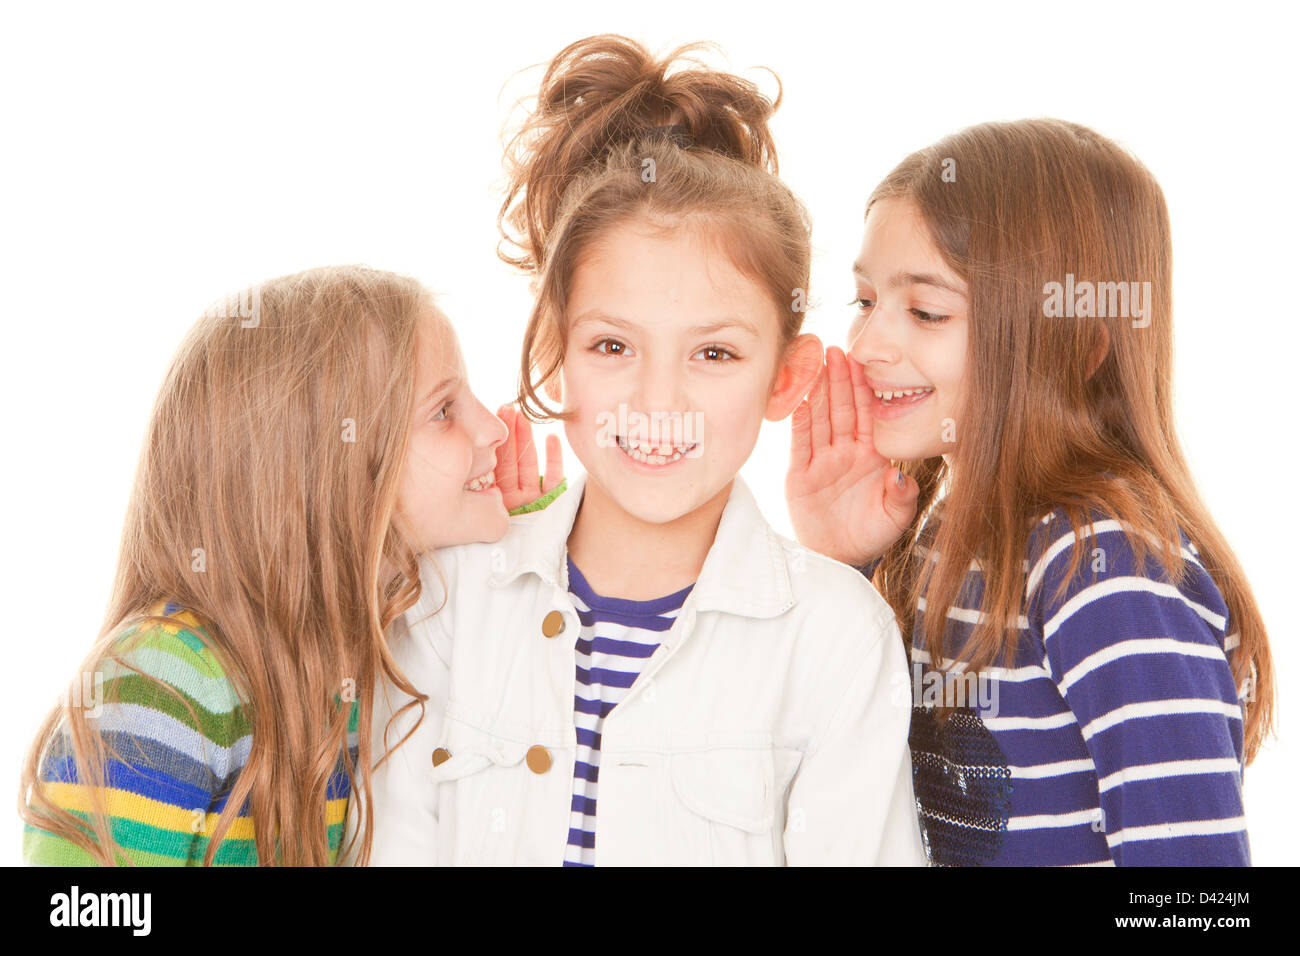 friends whispering secrets to happy child Stock Photo